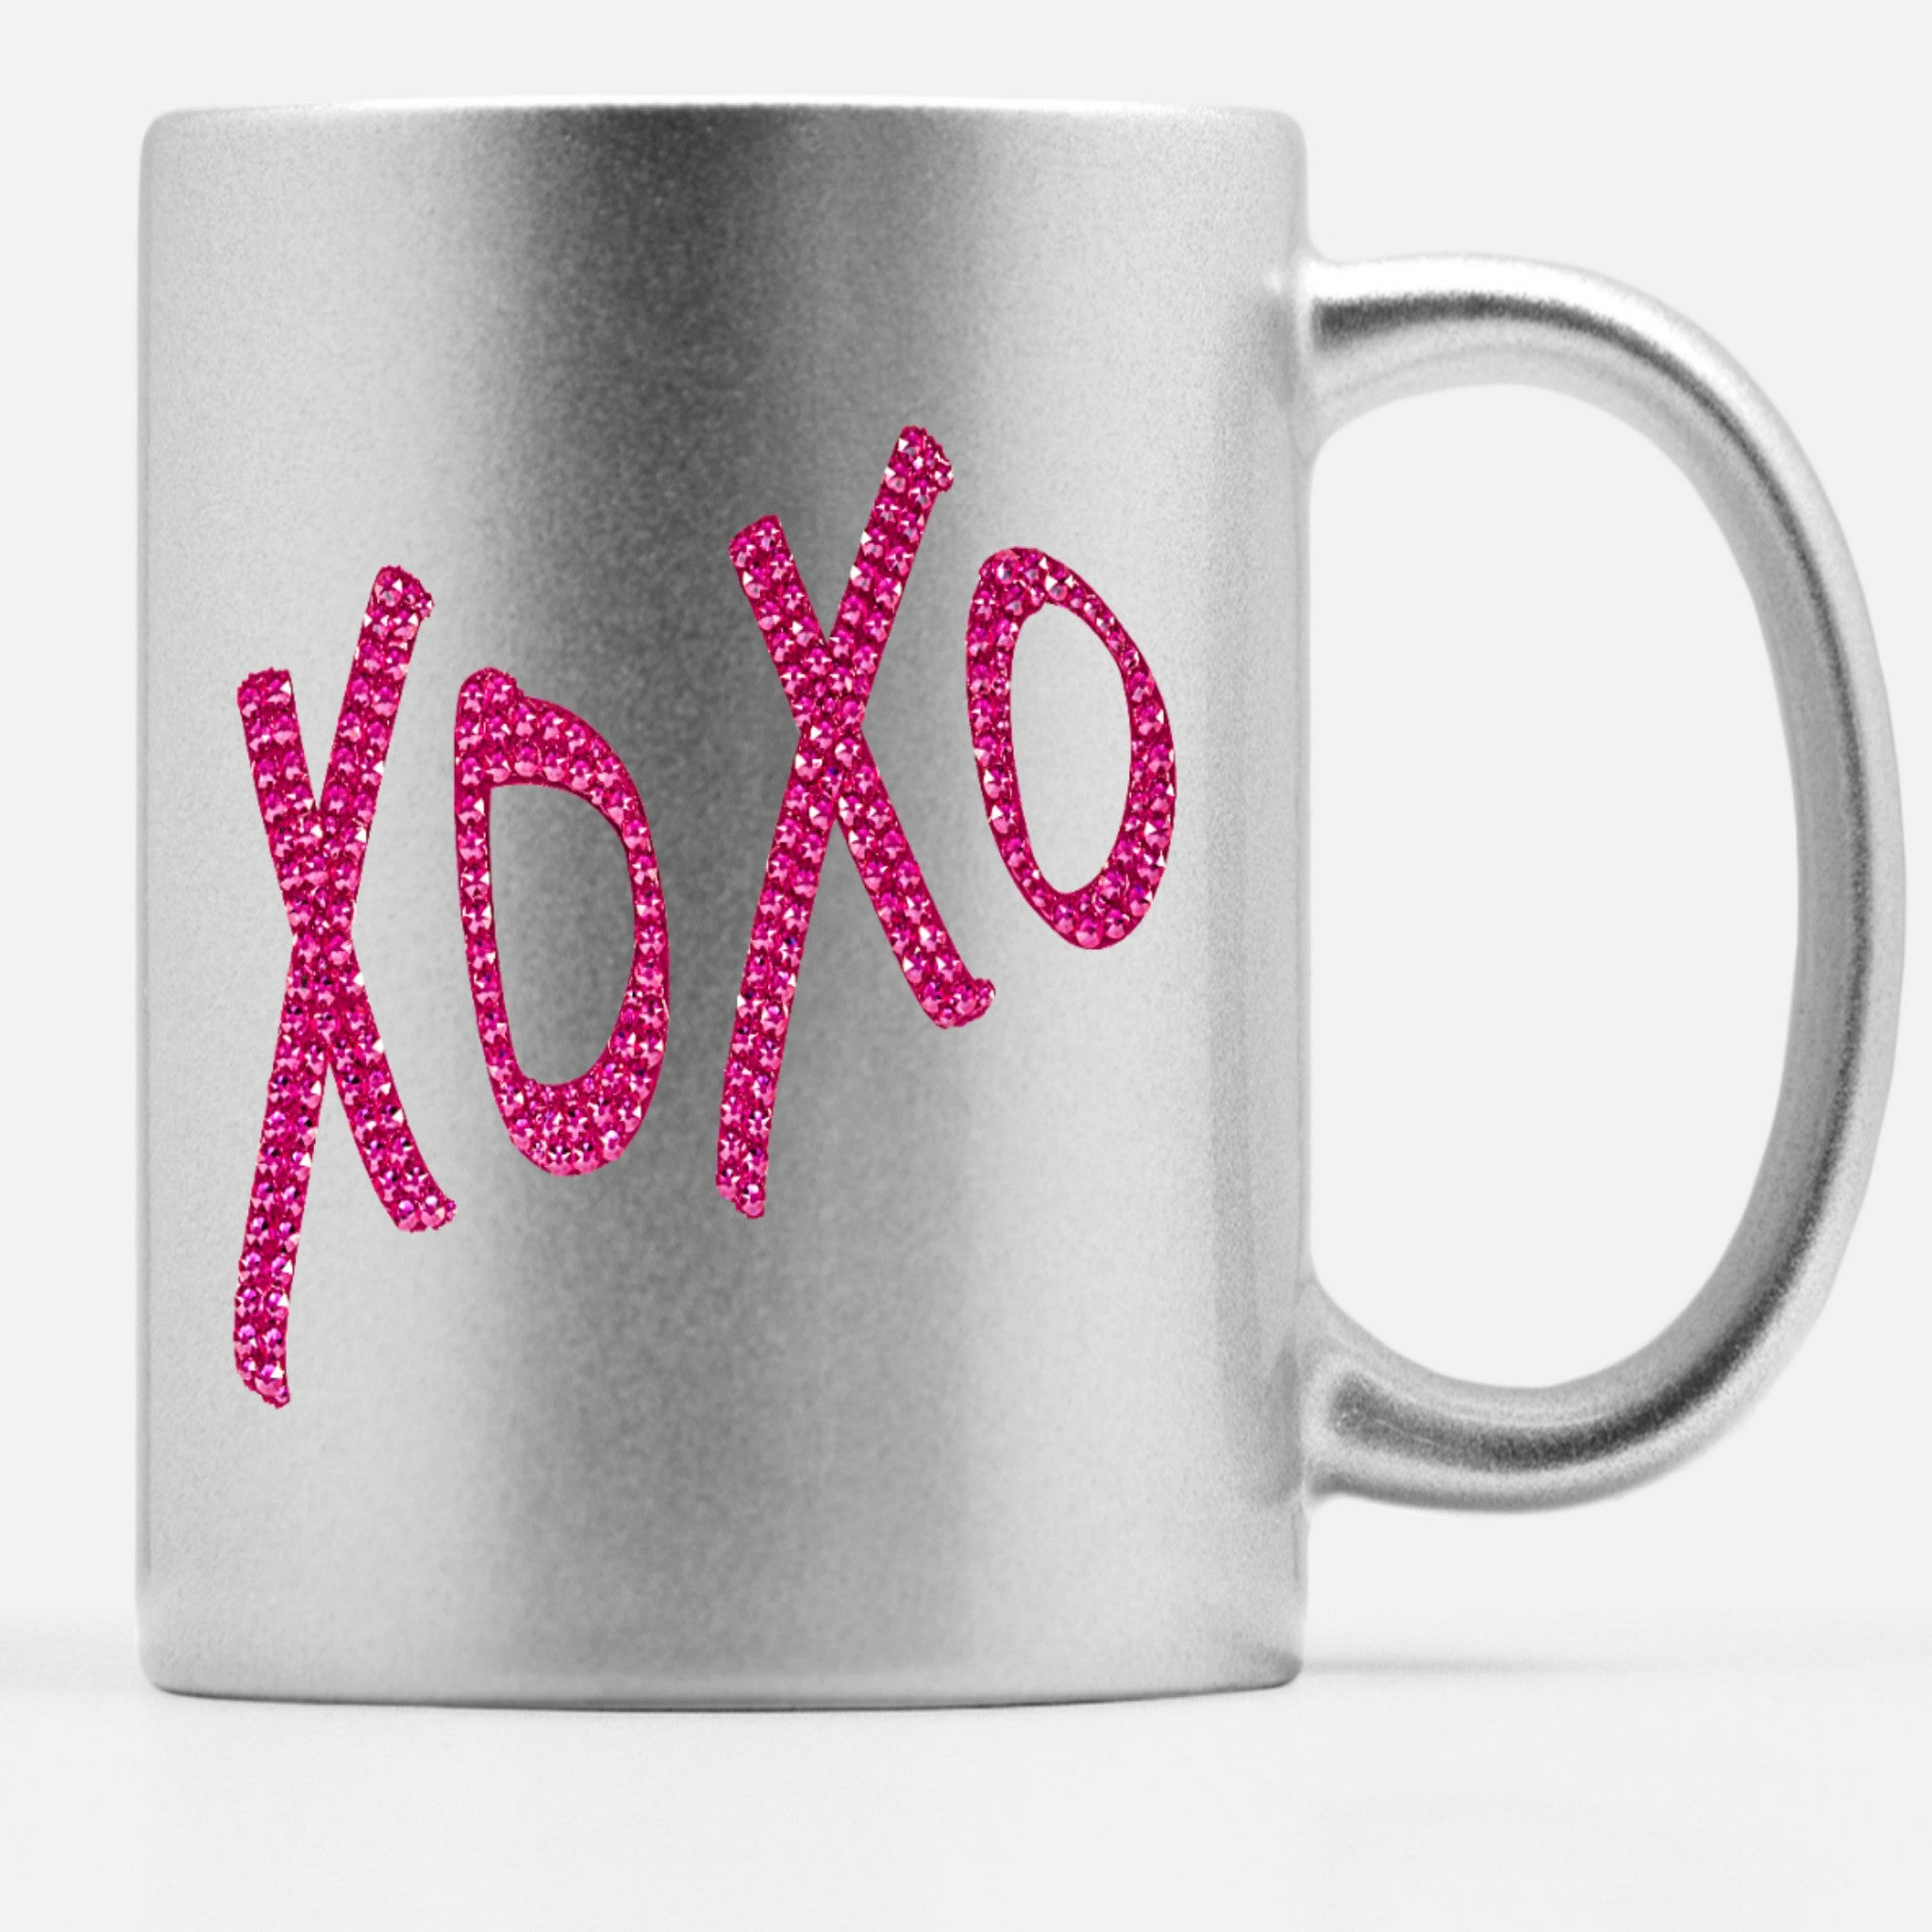 Coffee Mug - XOXO - CRYSTAHHLED 6cfdfa2009bf